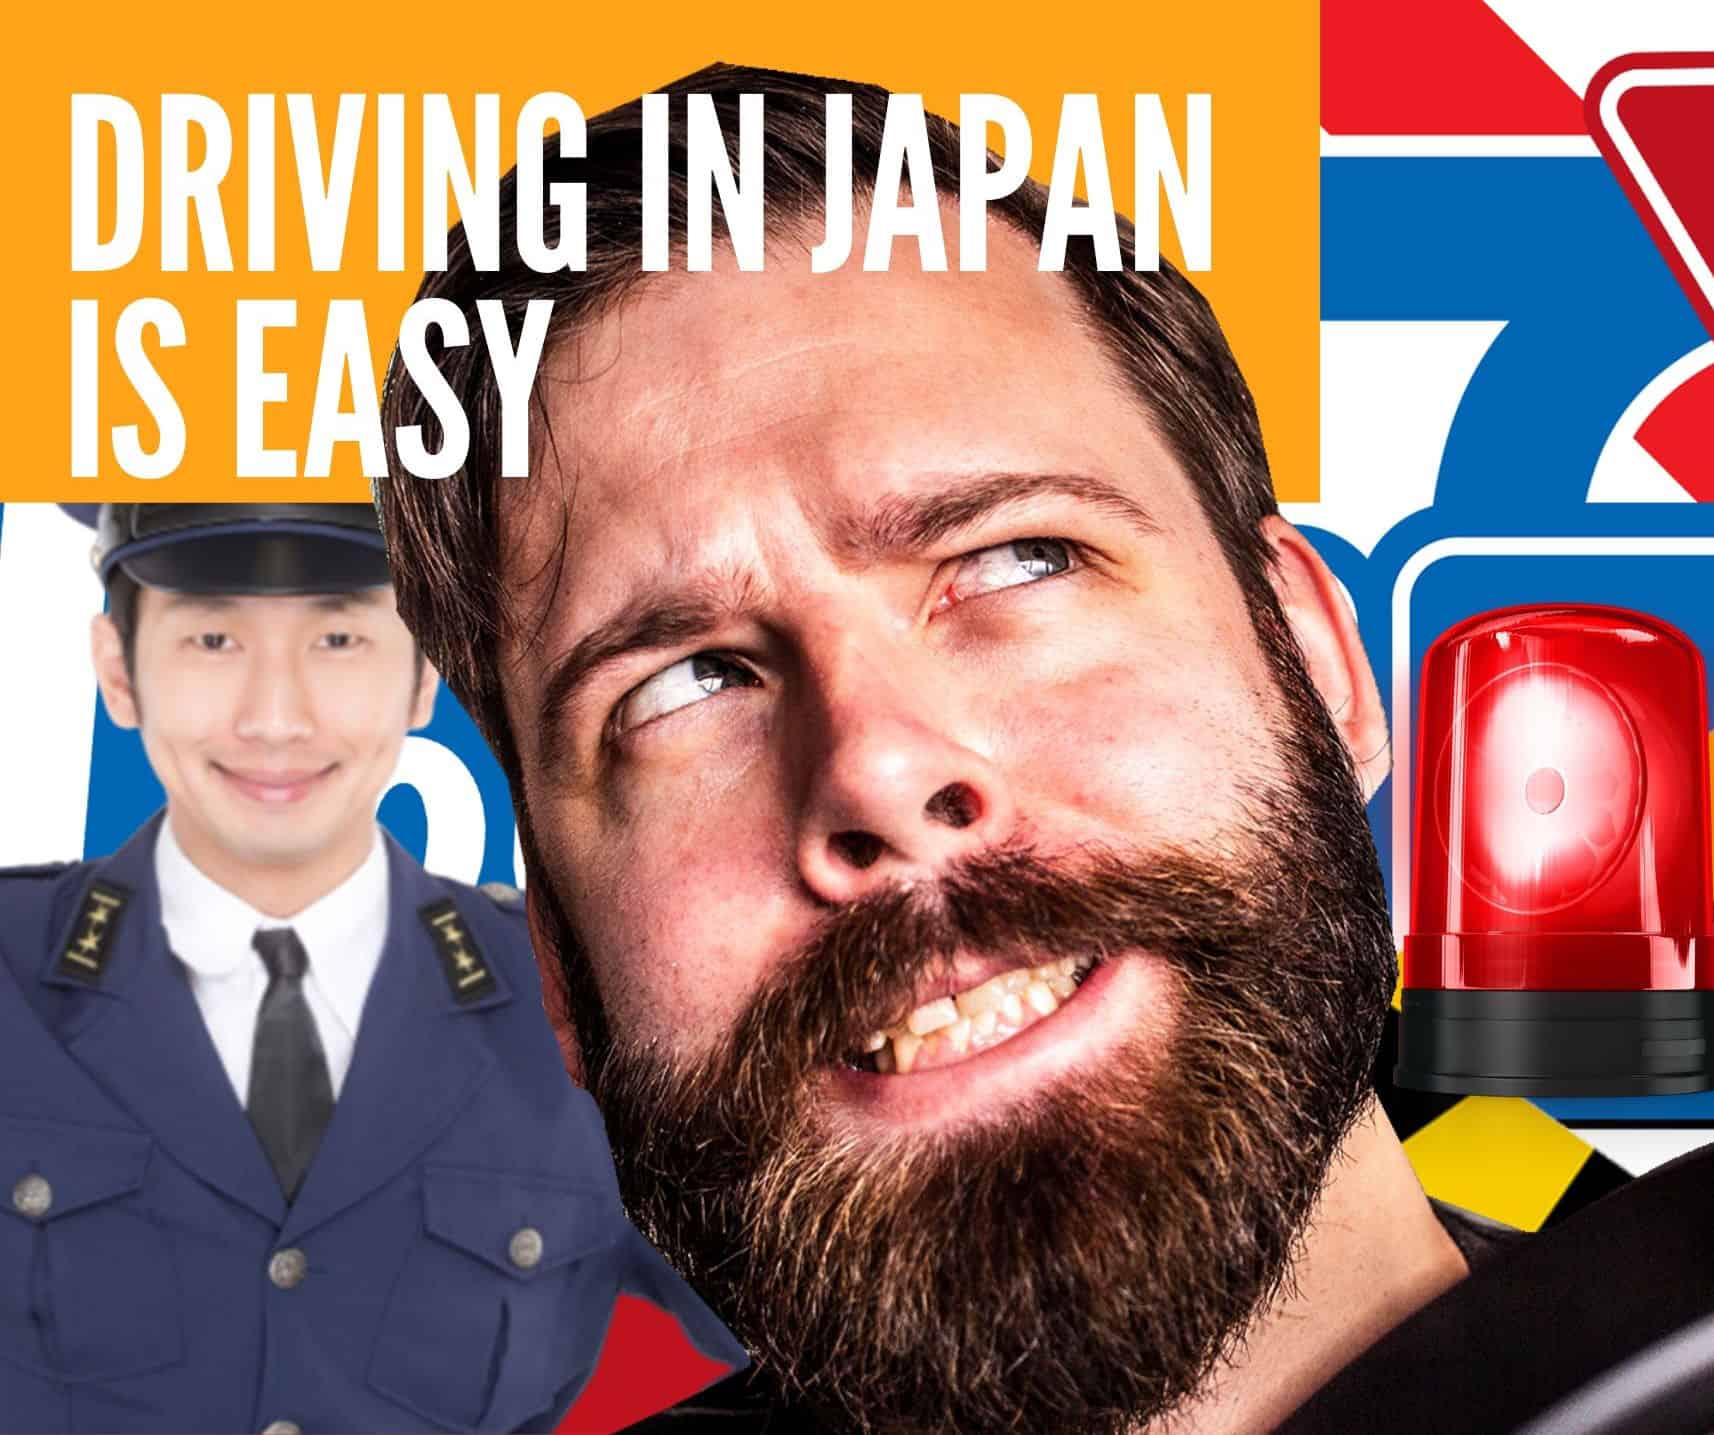 You are currently viewing Driving in Japan is Easy